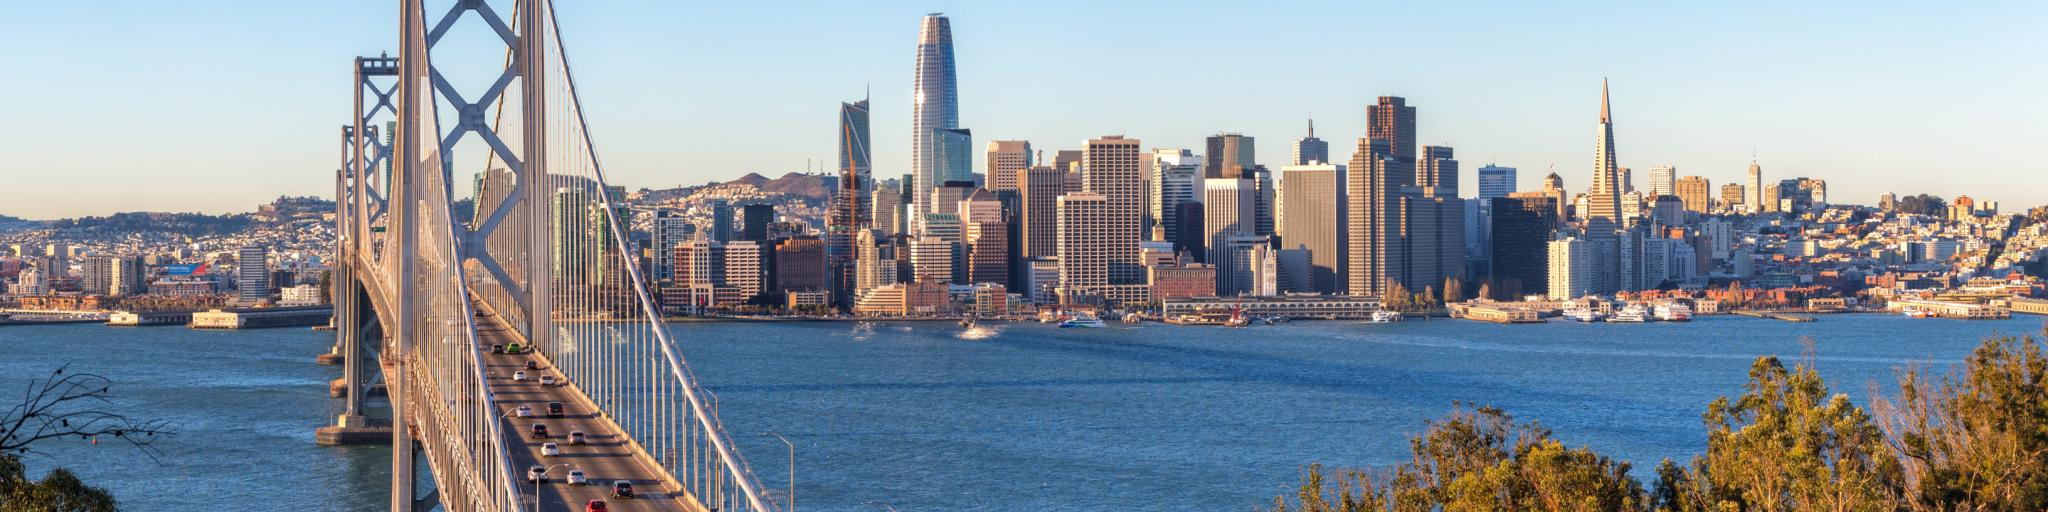 View of San Francisco from across the Bay Bridge